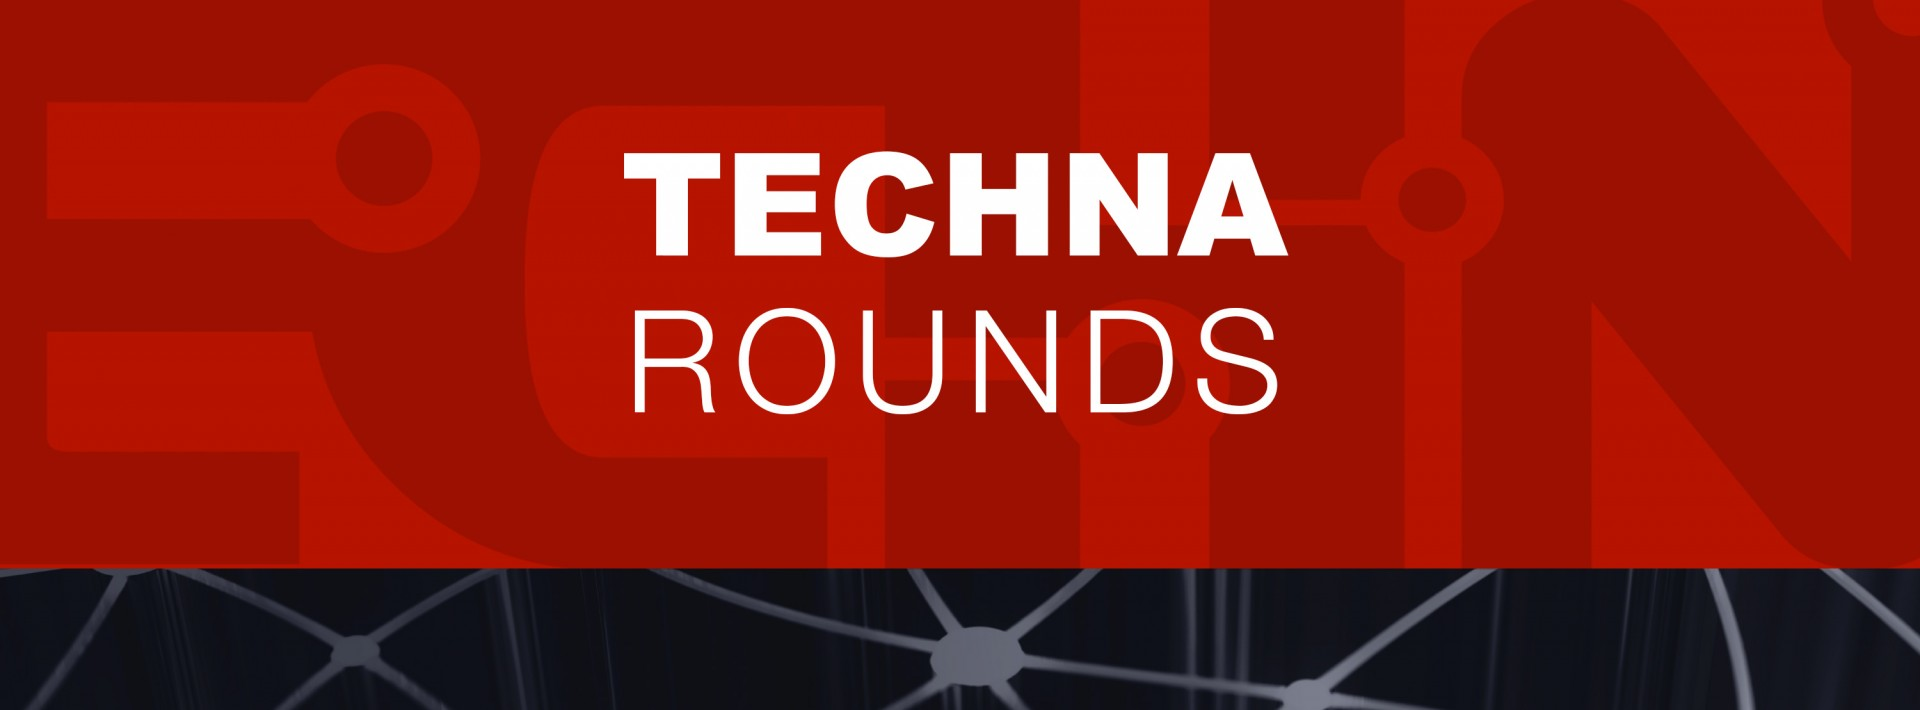 Techna Rounds text Graphic button